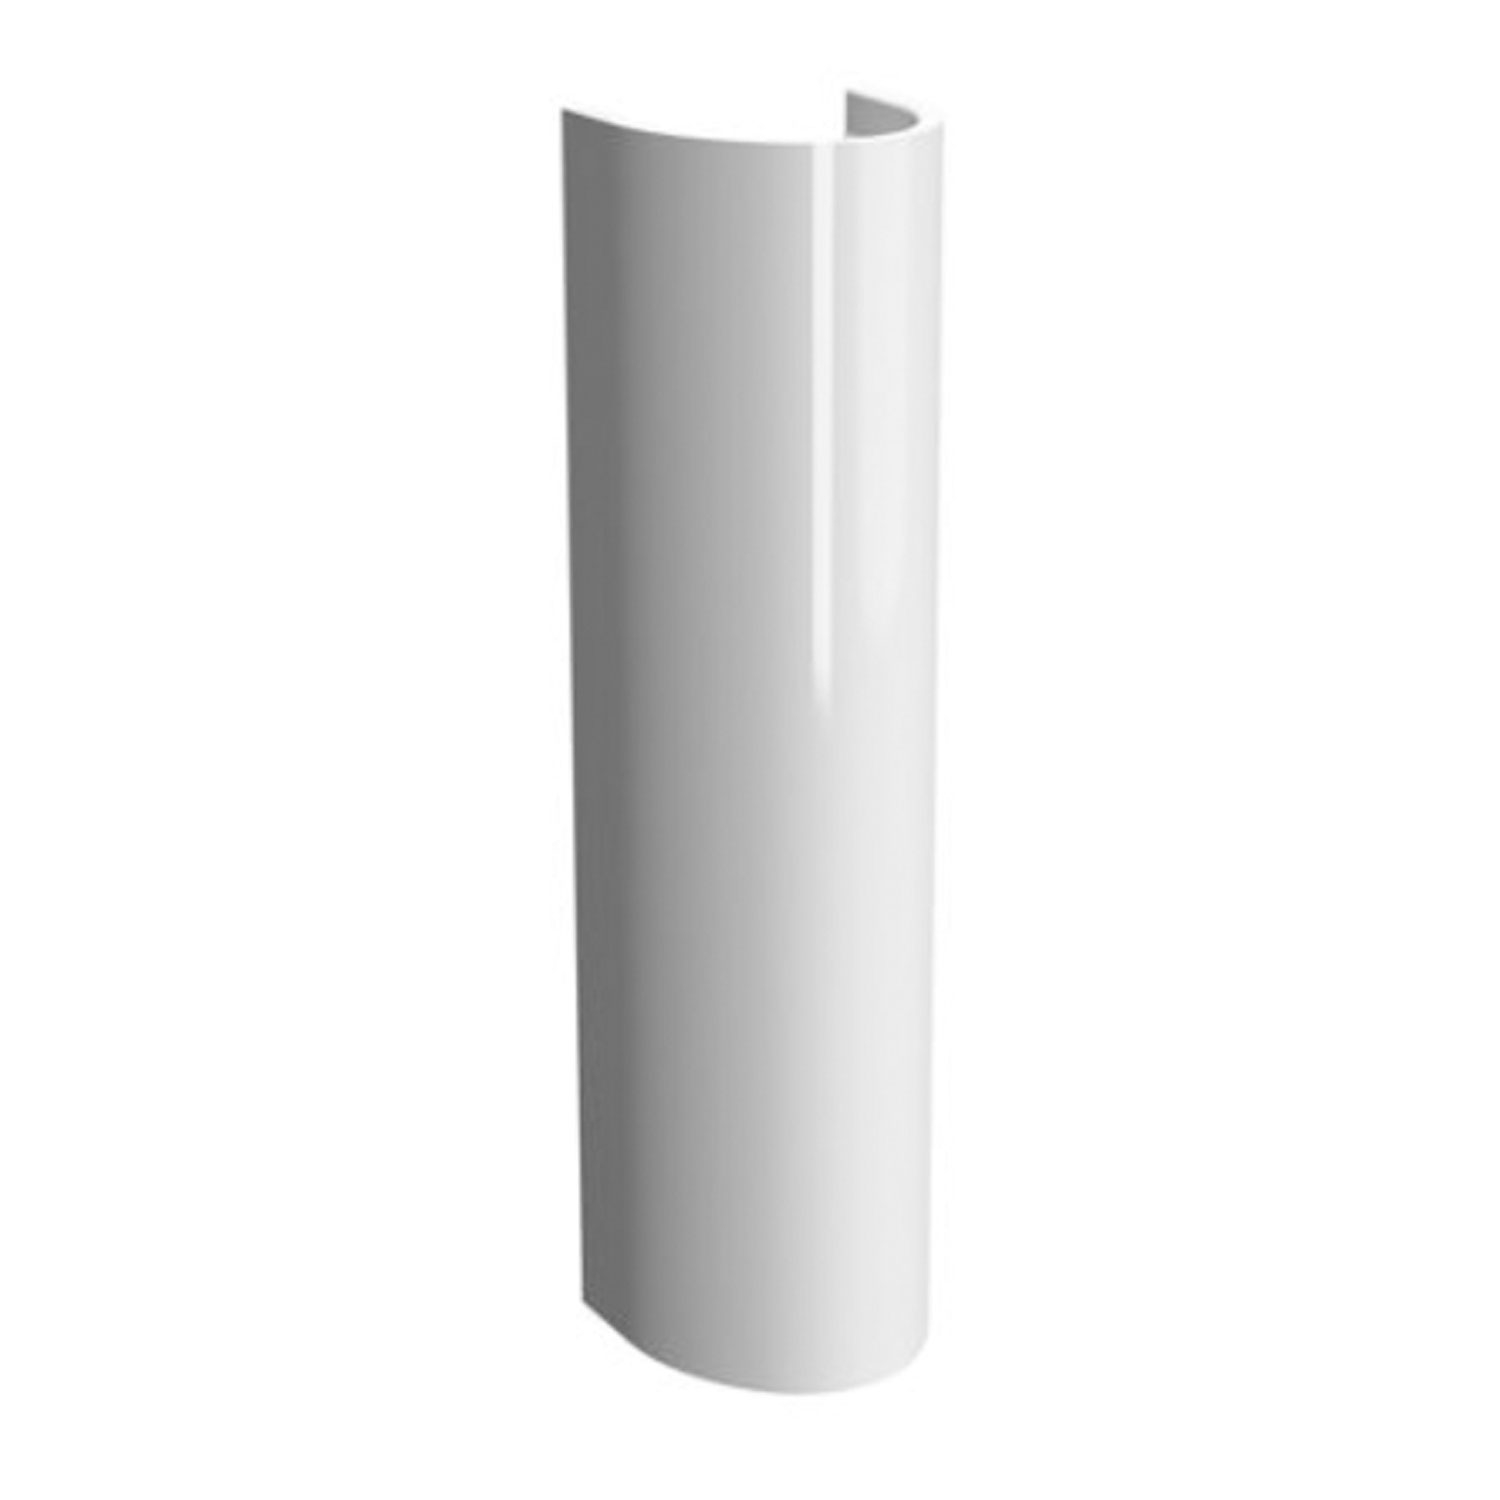 Vitra S50 Round Basin & Full Pedestal 650mm Wide 1 Tap Hole-1